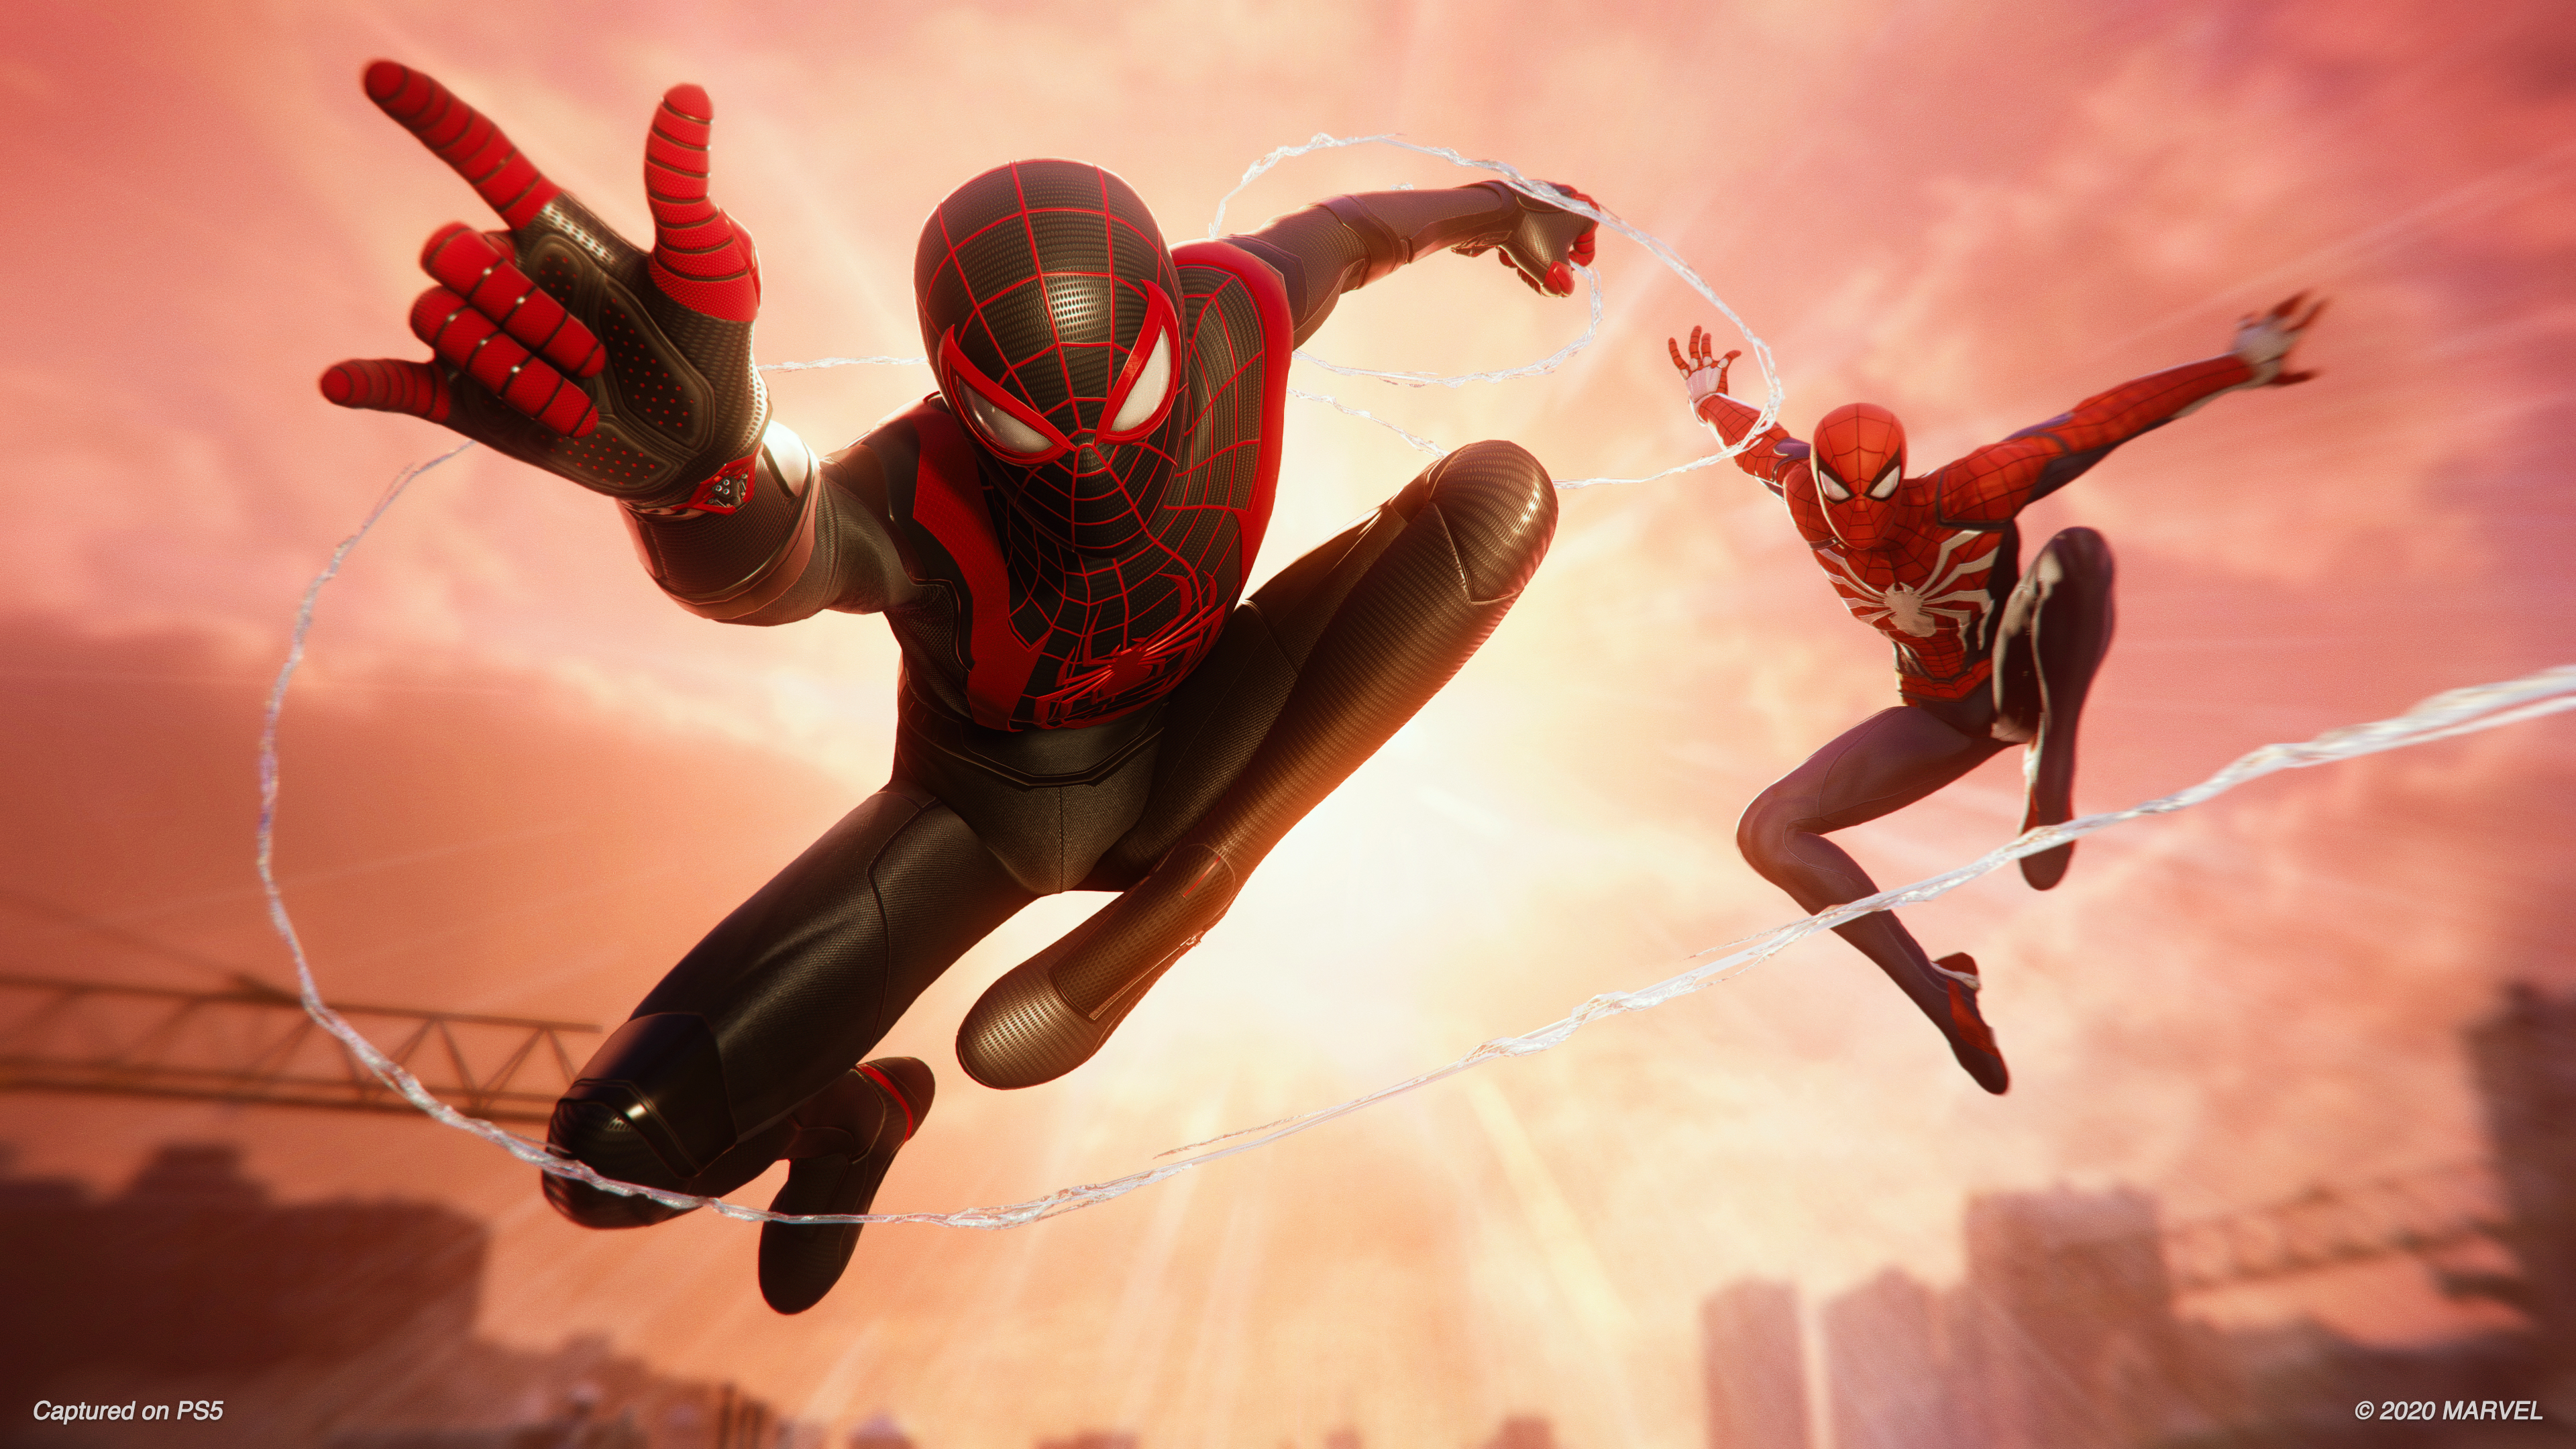 Awesome Spider Man Miles Morales Ps5 Images wallpapers to download for free greenvirals